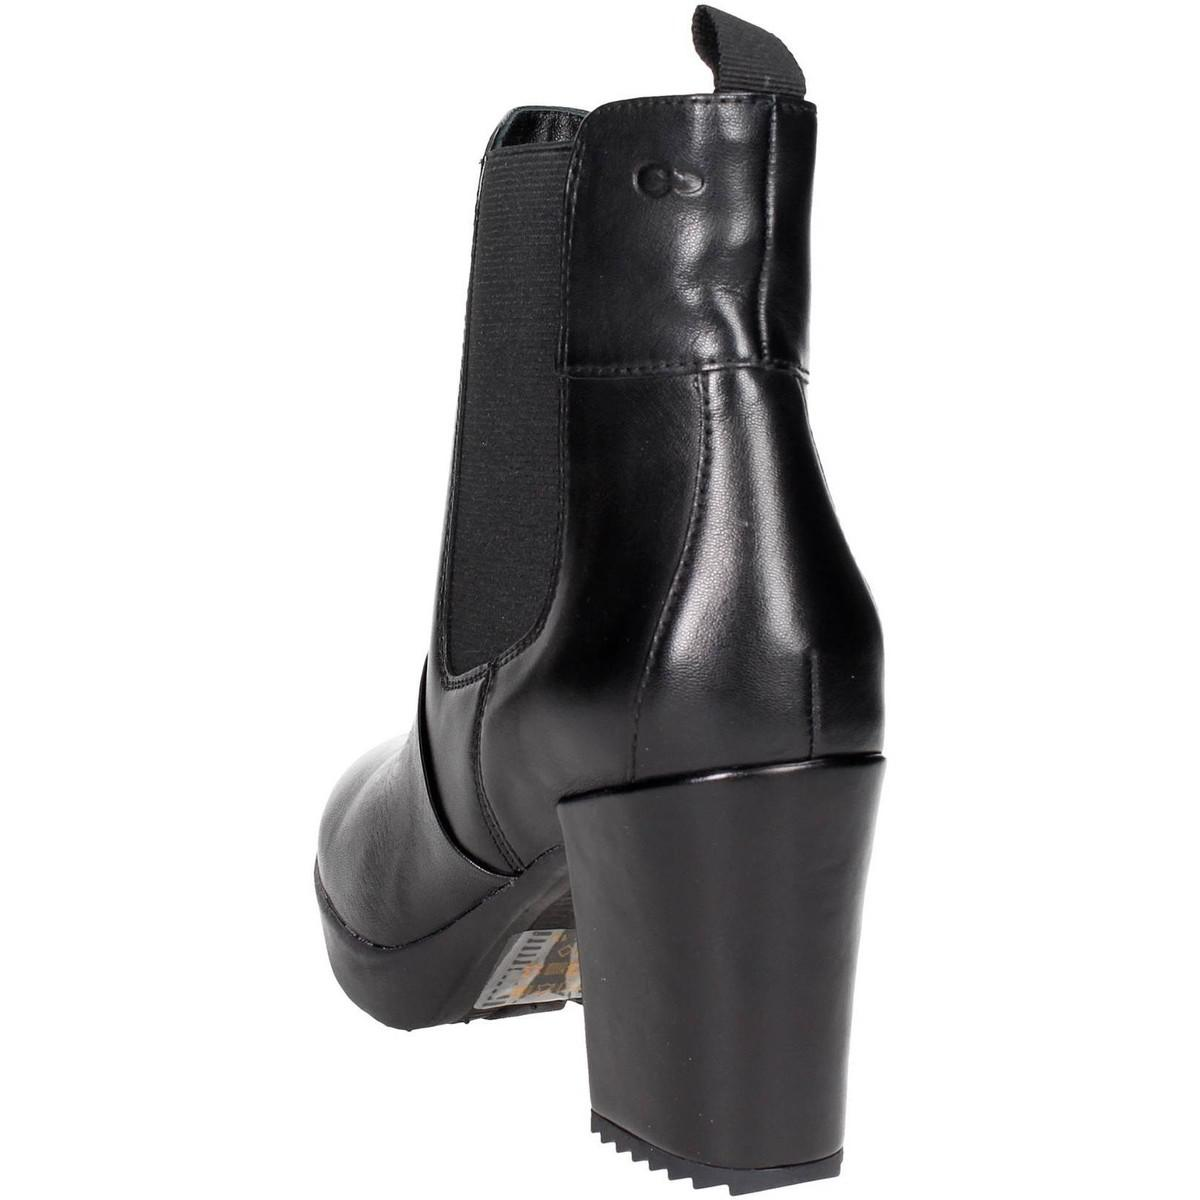 75f586843b Stonefly - 107340 000 Ankle Boots With Heels Women Black Women s Low Boots  In Black -. View fullscreen